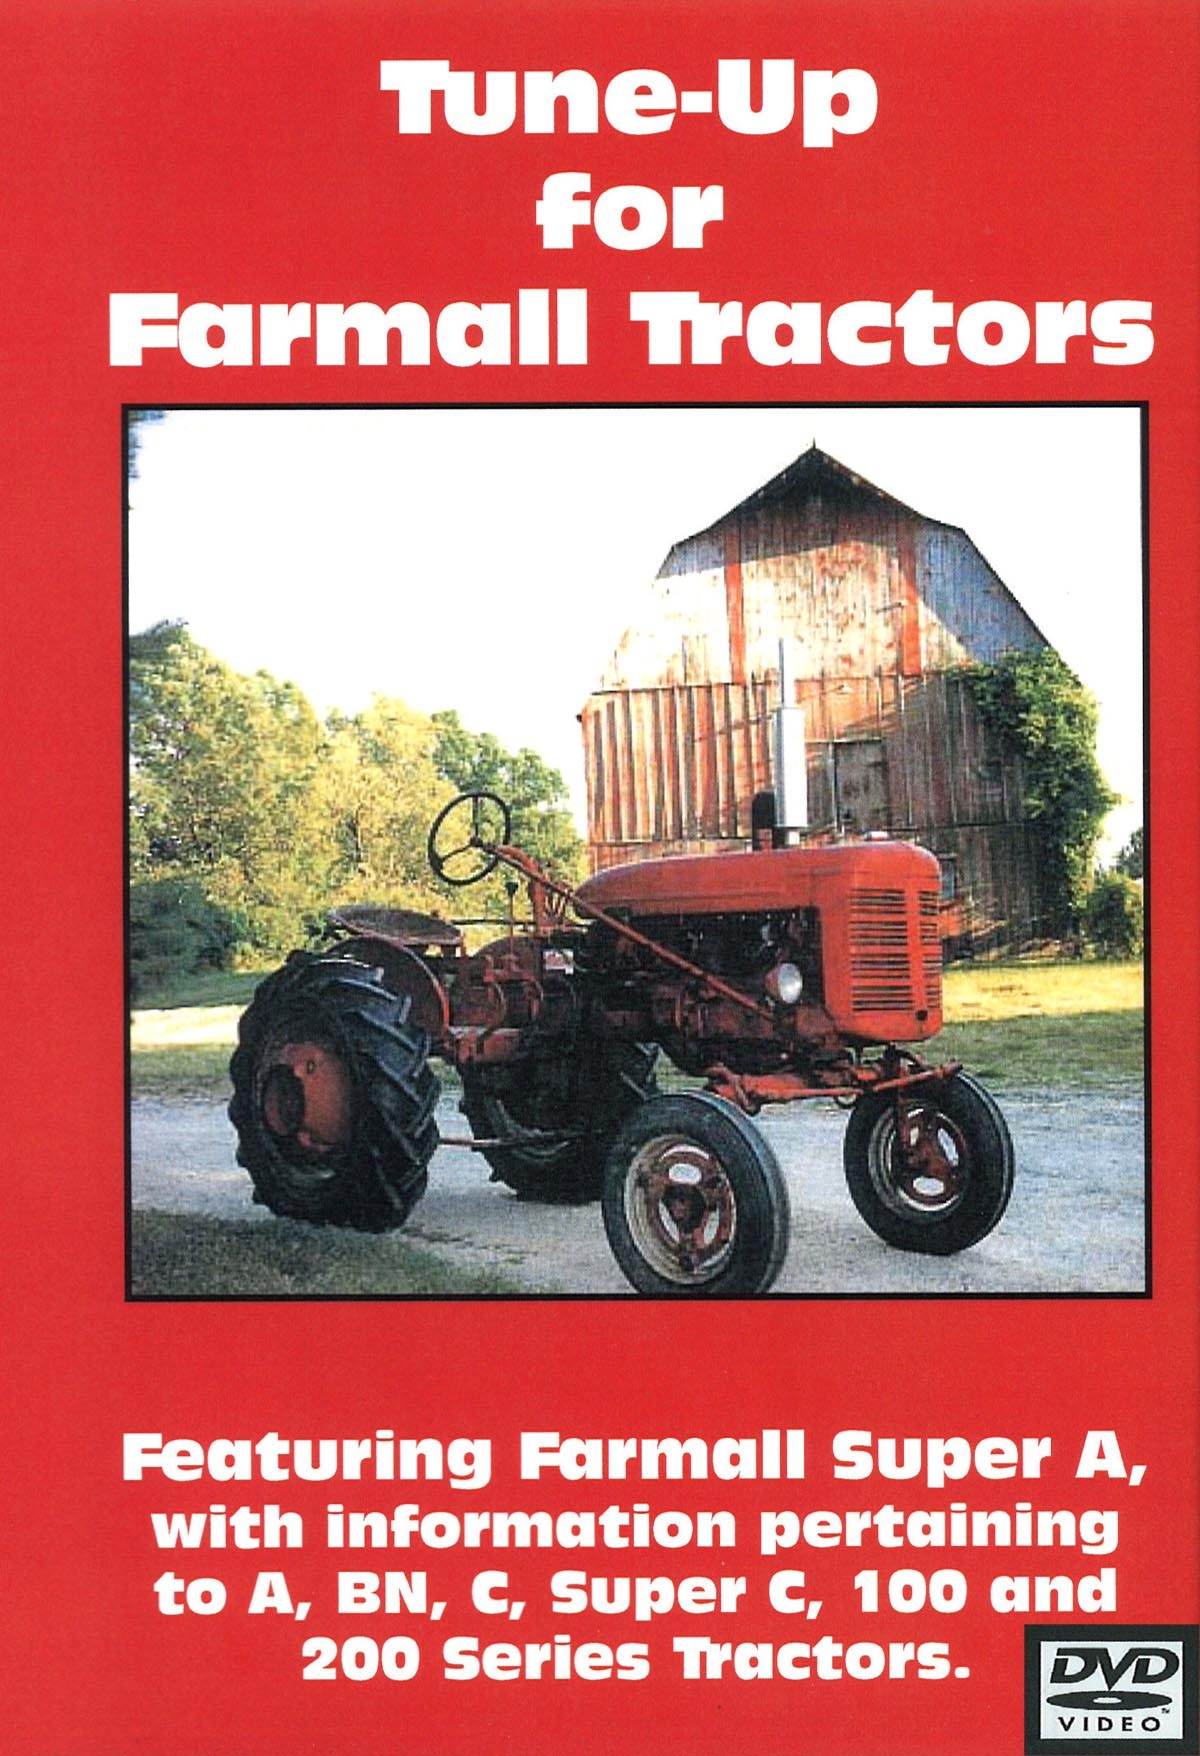 FARMALL A TUNE-UP VIDEO (DVD)